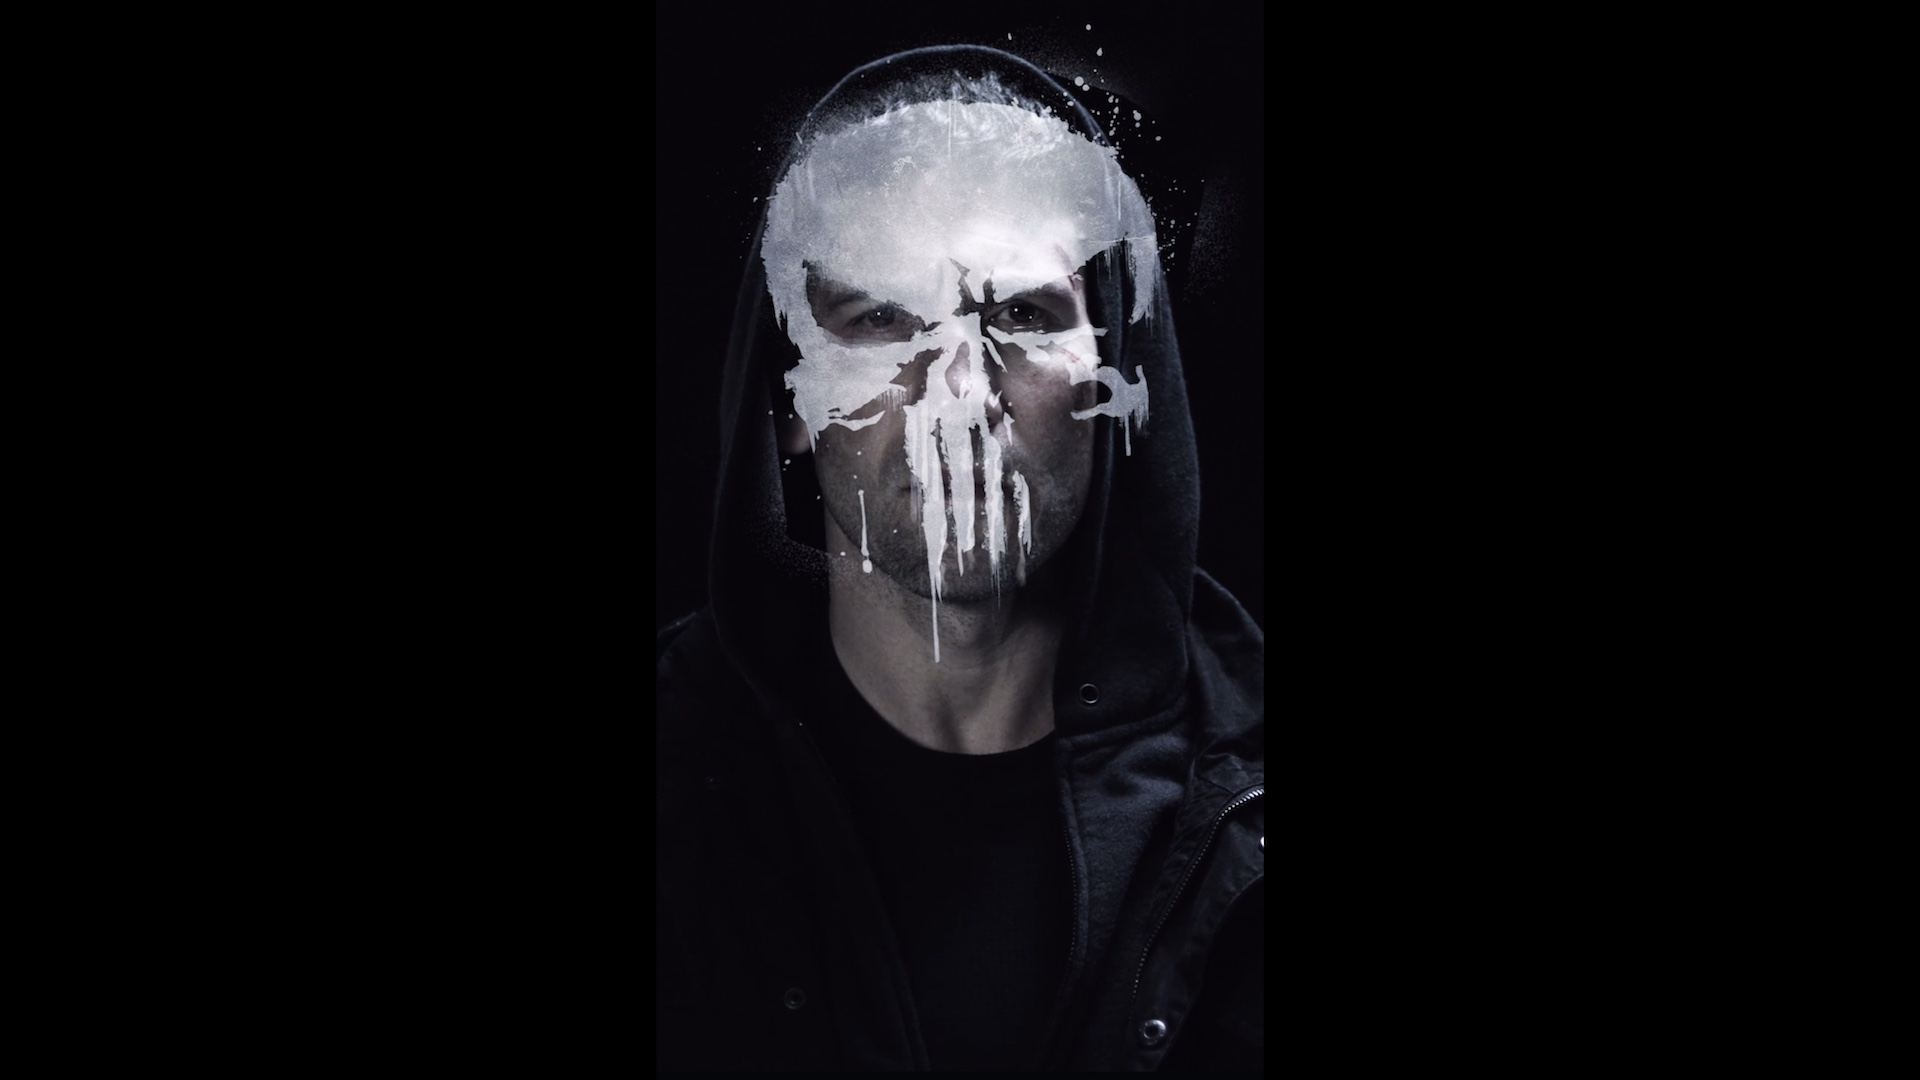 Cool new 'The Punisher' motion poster released by Netflix